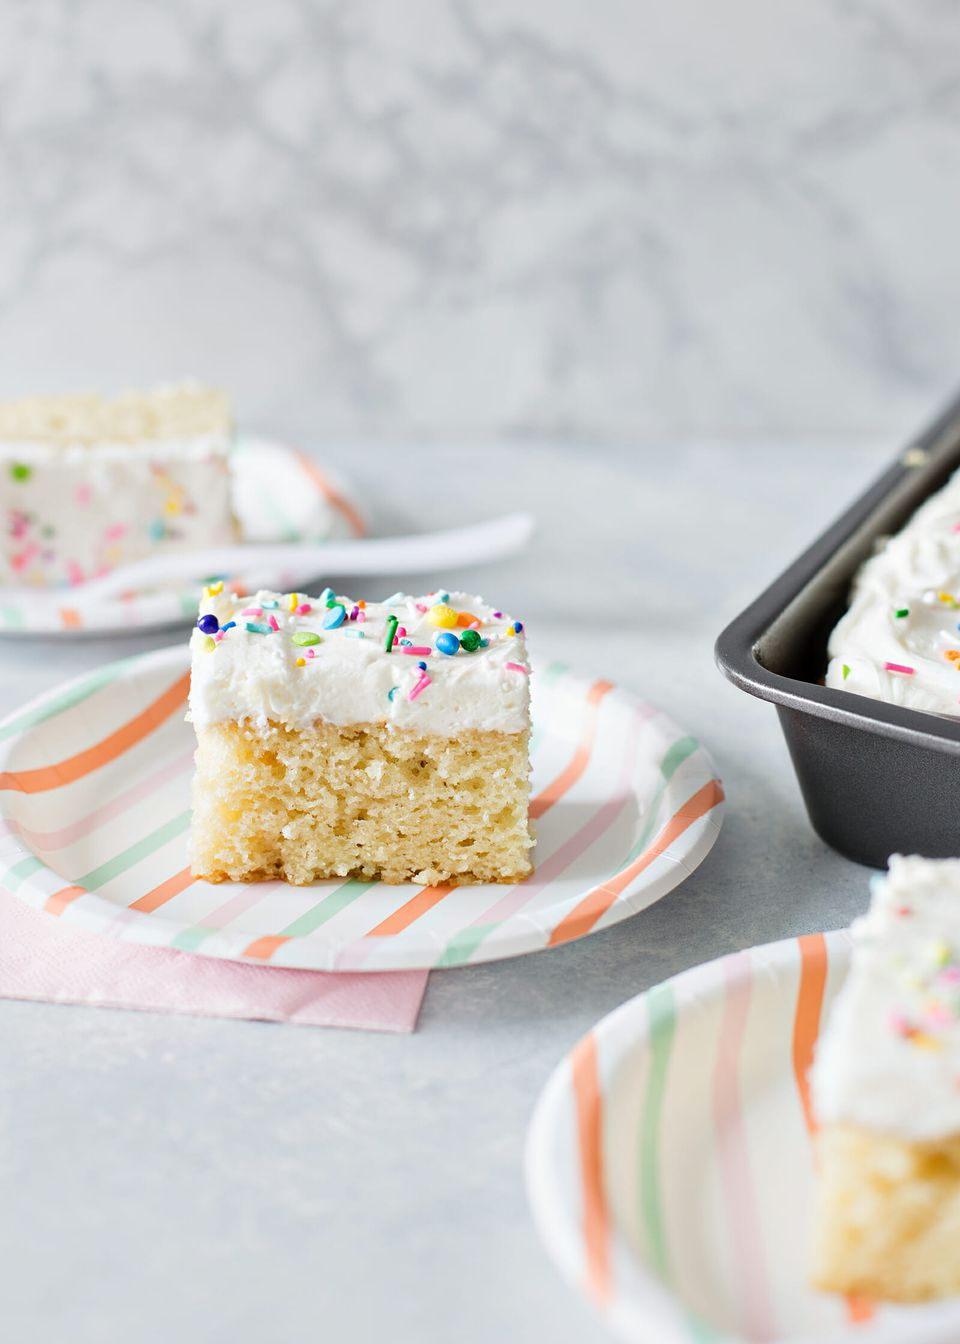 Best Vanilla Cake Recipe - vanilla cake with white frosting and sprinkles on plate.